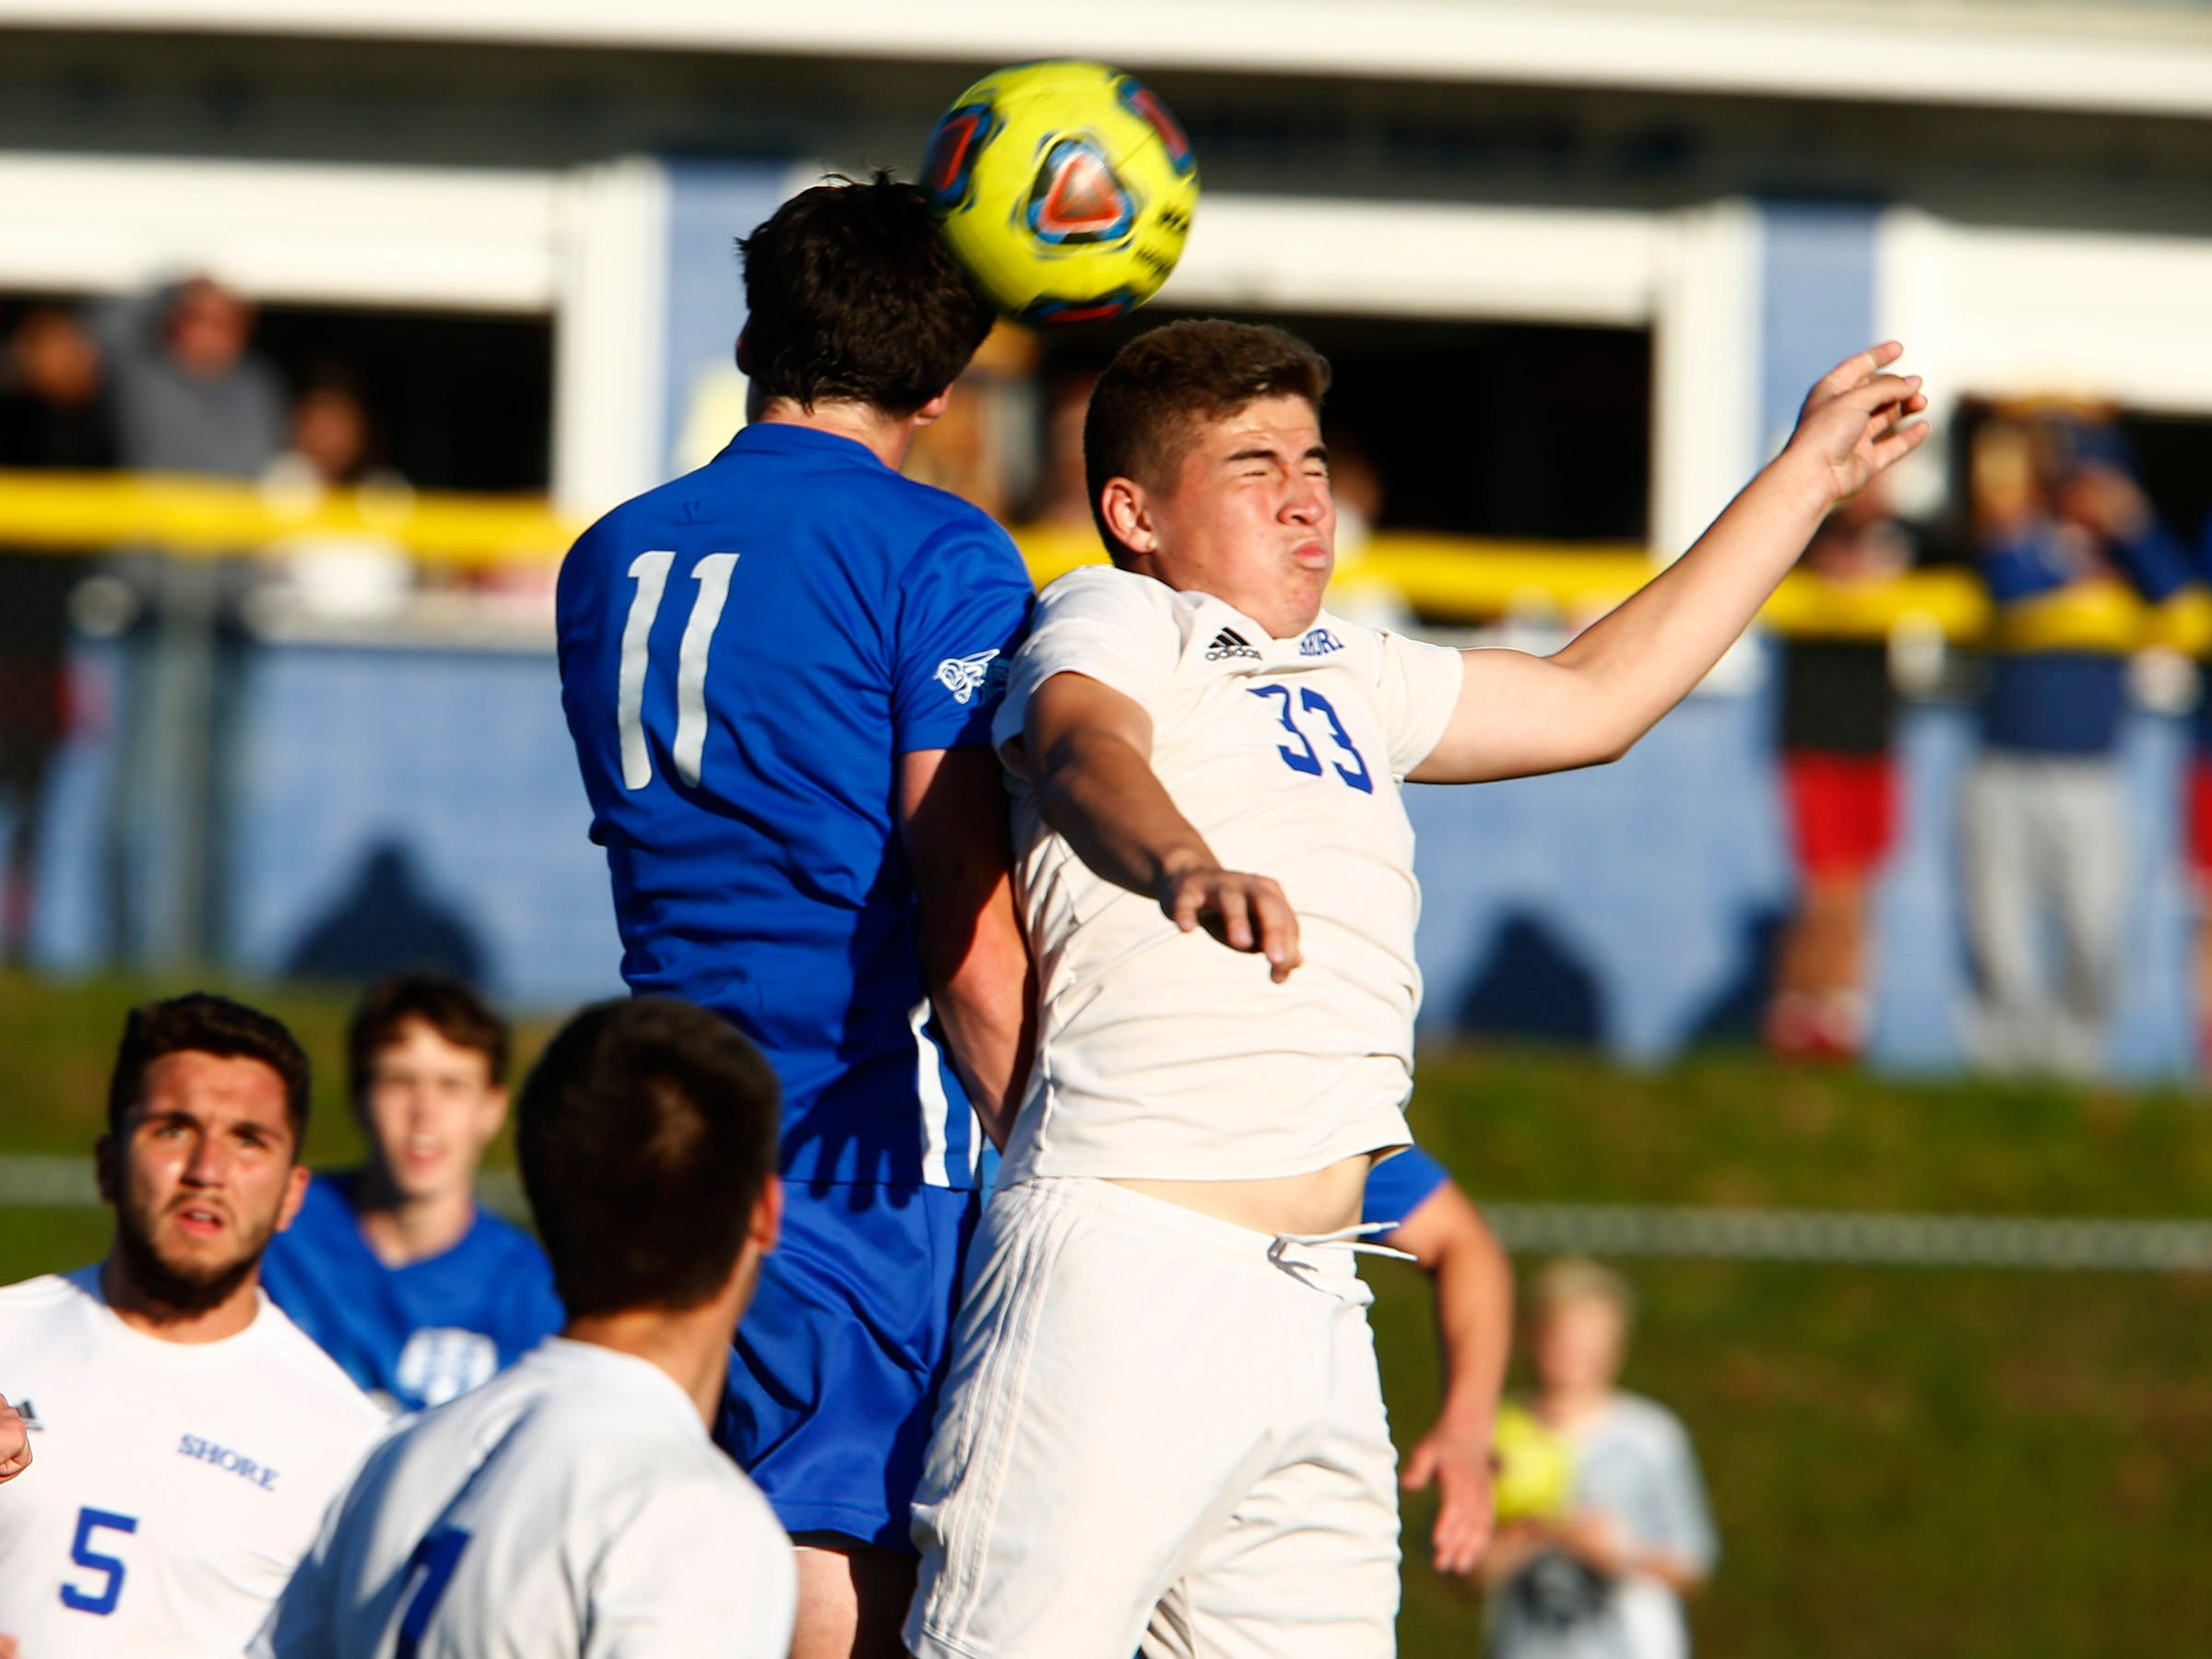 Holmdel faces Shore Regional in the Central Group II boys soccer final in a game played in Holmdel Thursday, November 8, 2018.